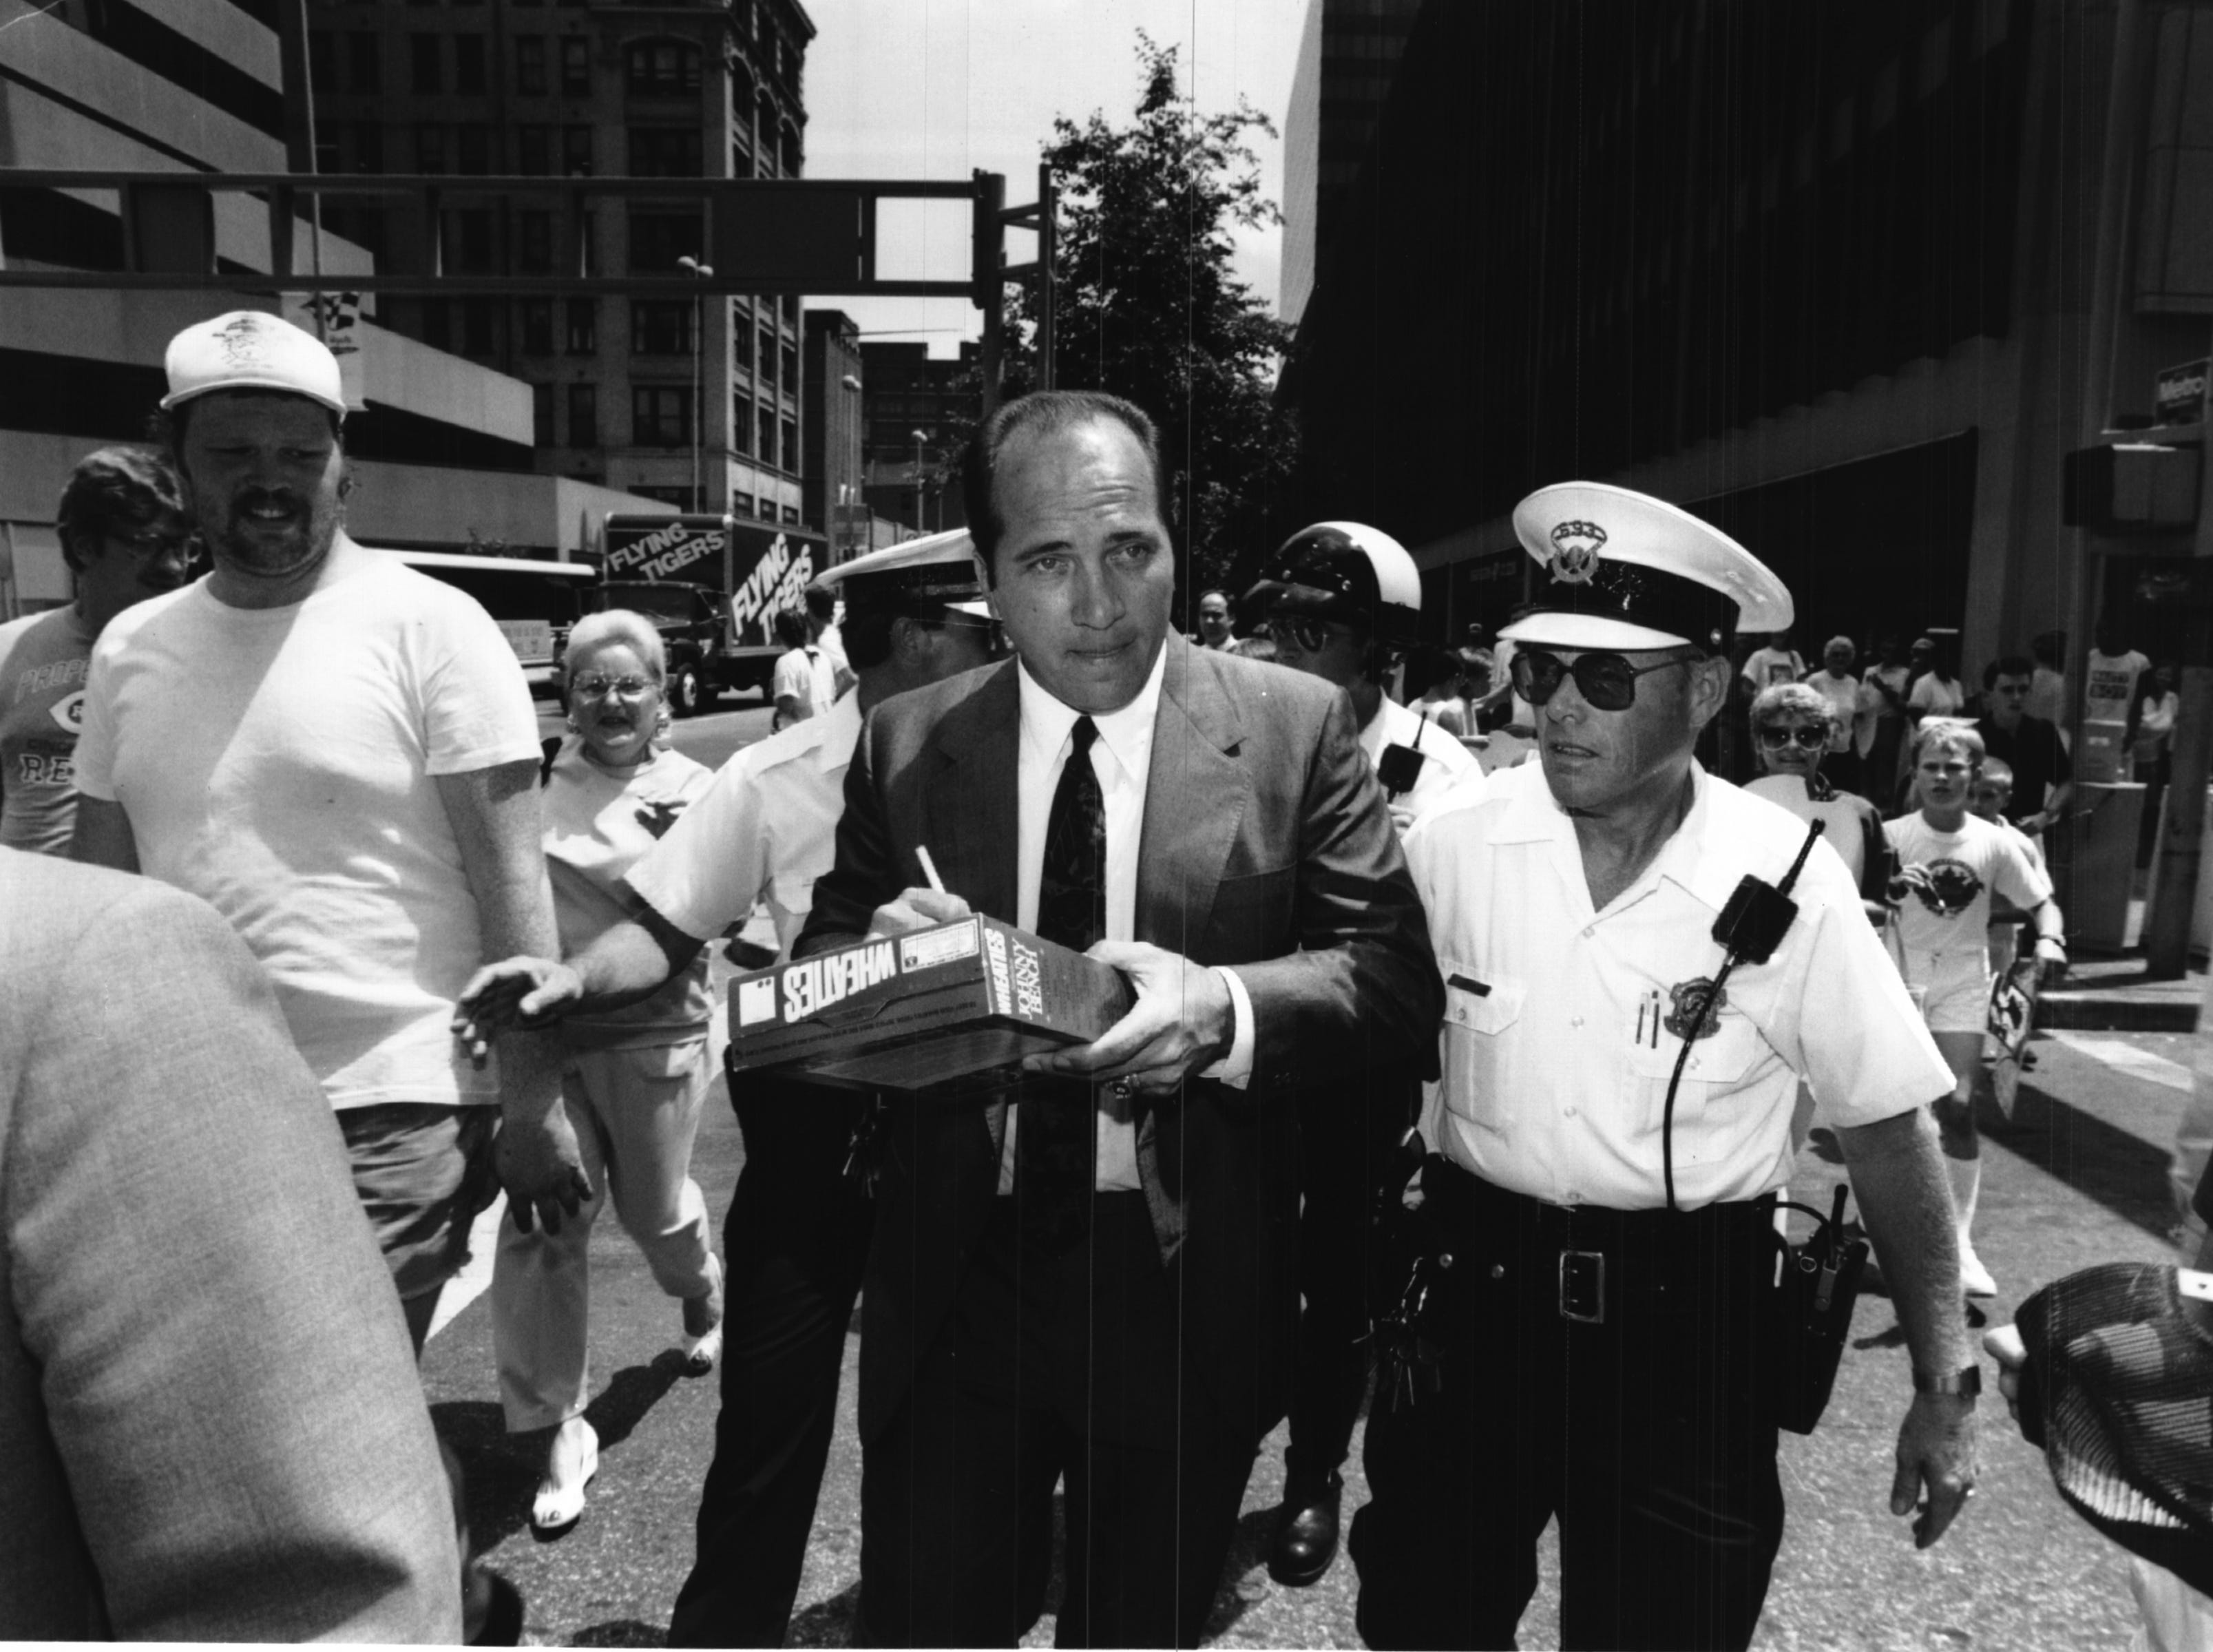 JULY 18, 1989: Johnny Bench signs autographs on Wheaties cereal box during ceremonies on Fountain Square. The Enquirer/Gary Landers